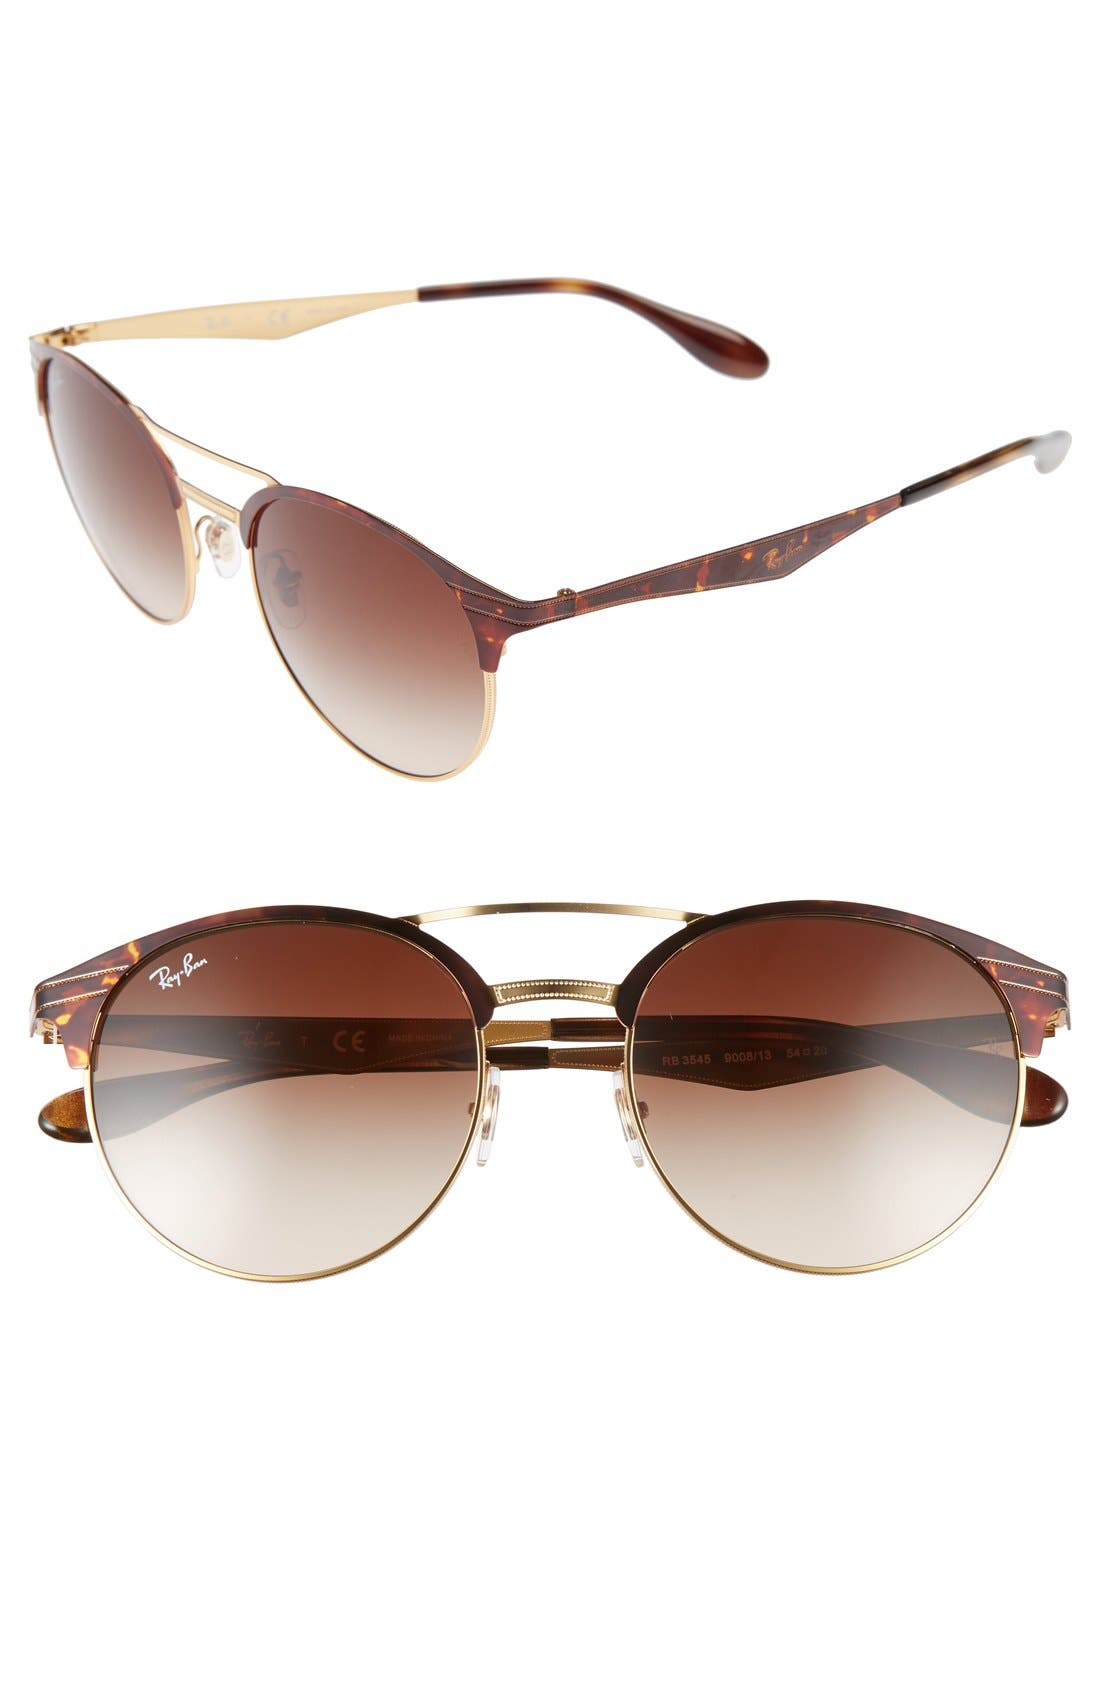 Highstreet 54mm Round Sunglasses,                             Main thumbnail 1, color,                             001